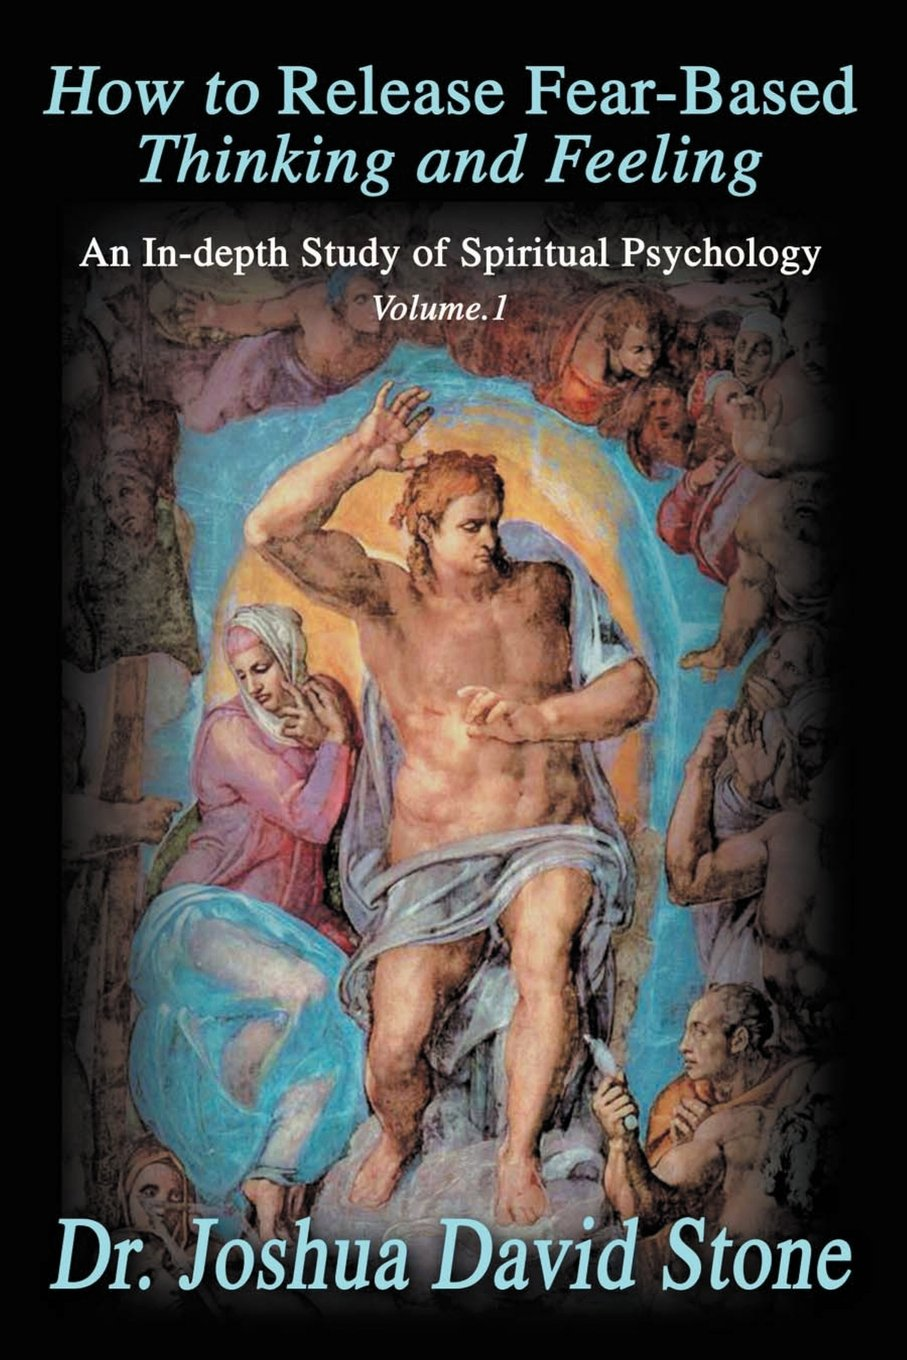 How to Release Fear-Based Thinking and Feeling: An In-depth Study of Spiritual Psychology Vol.1 (Ascension Books) pdf